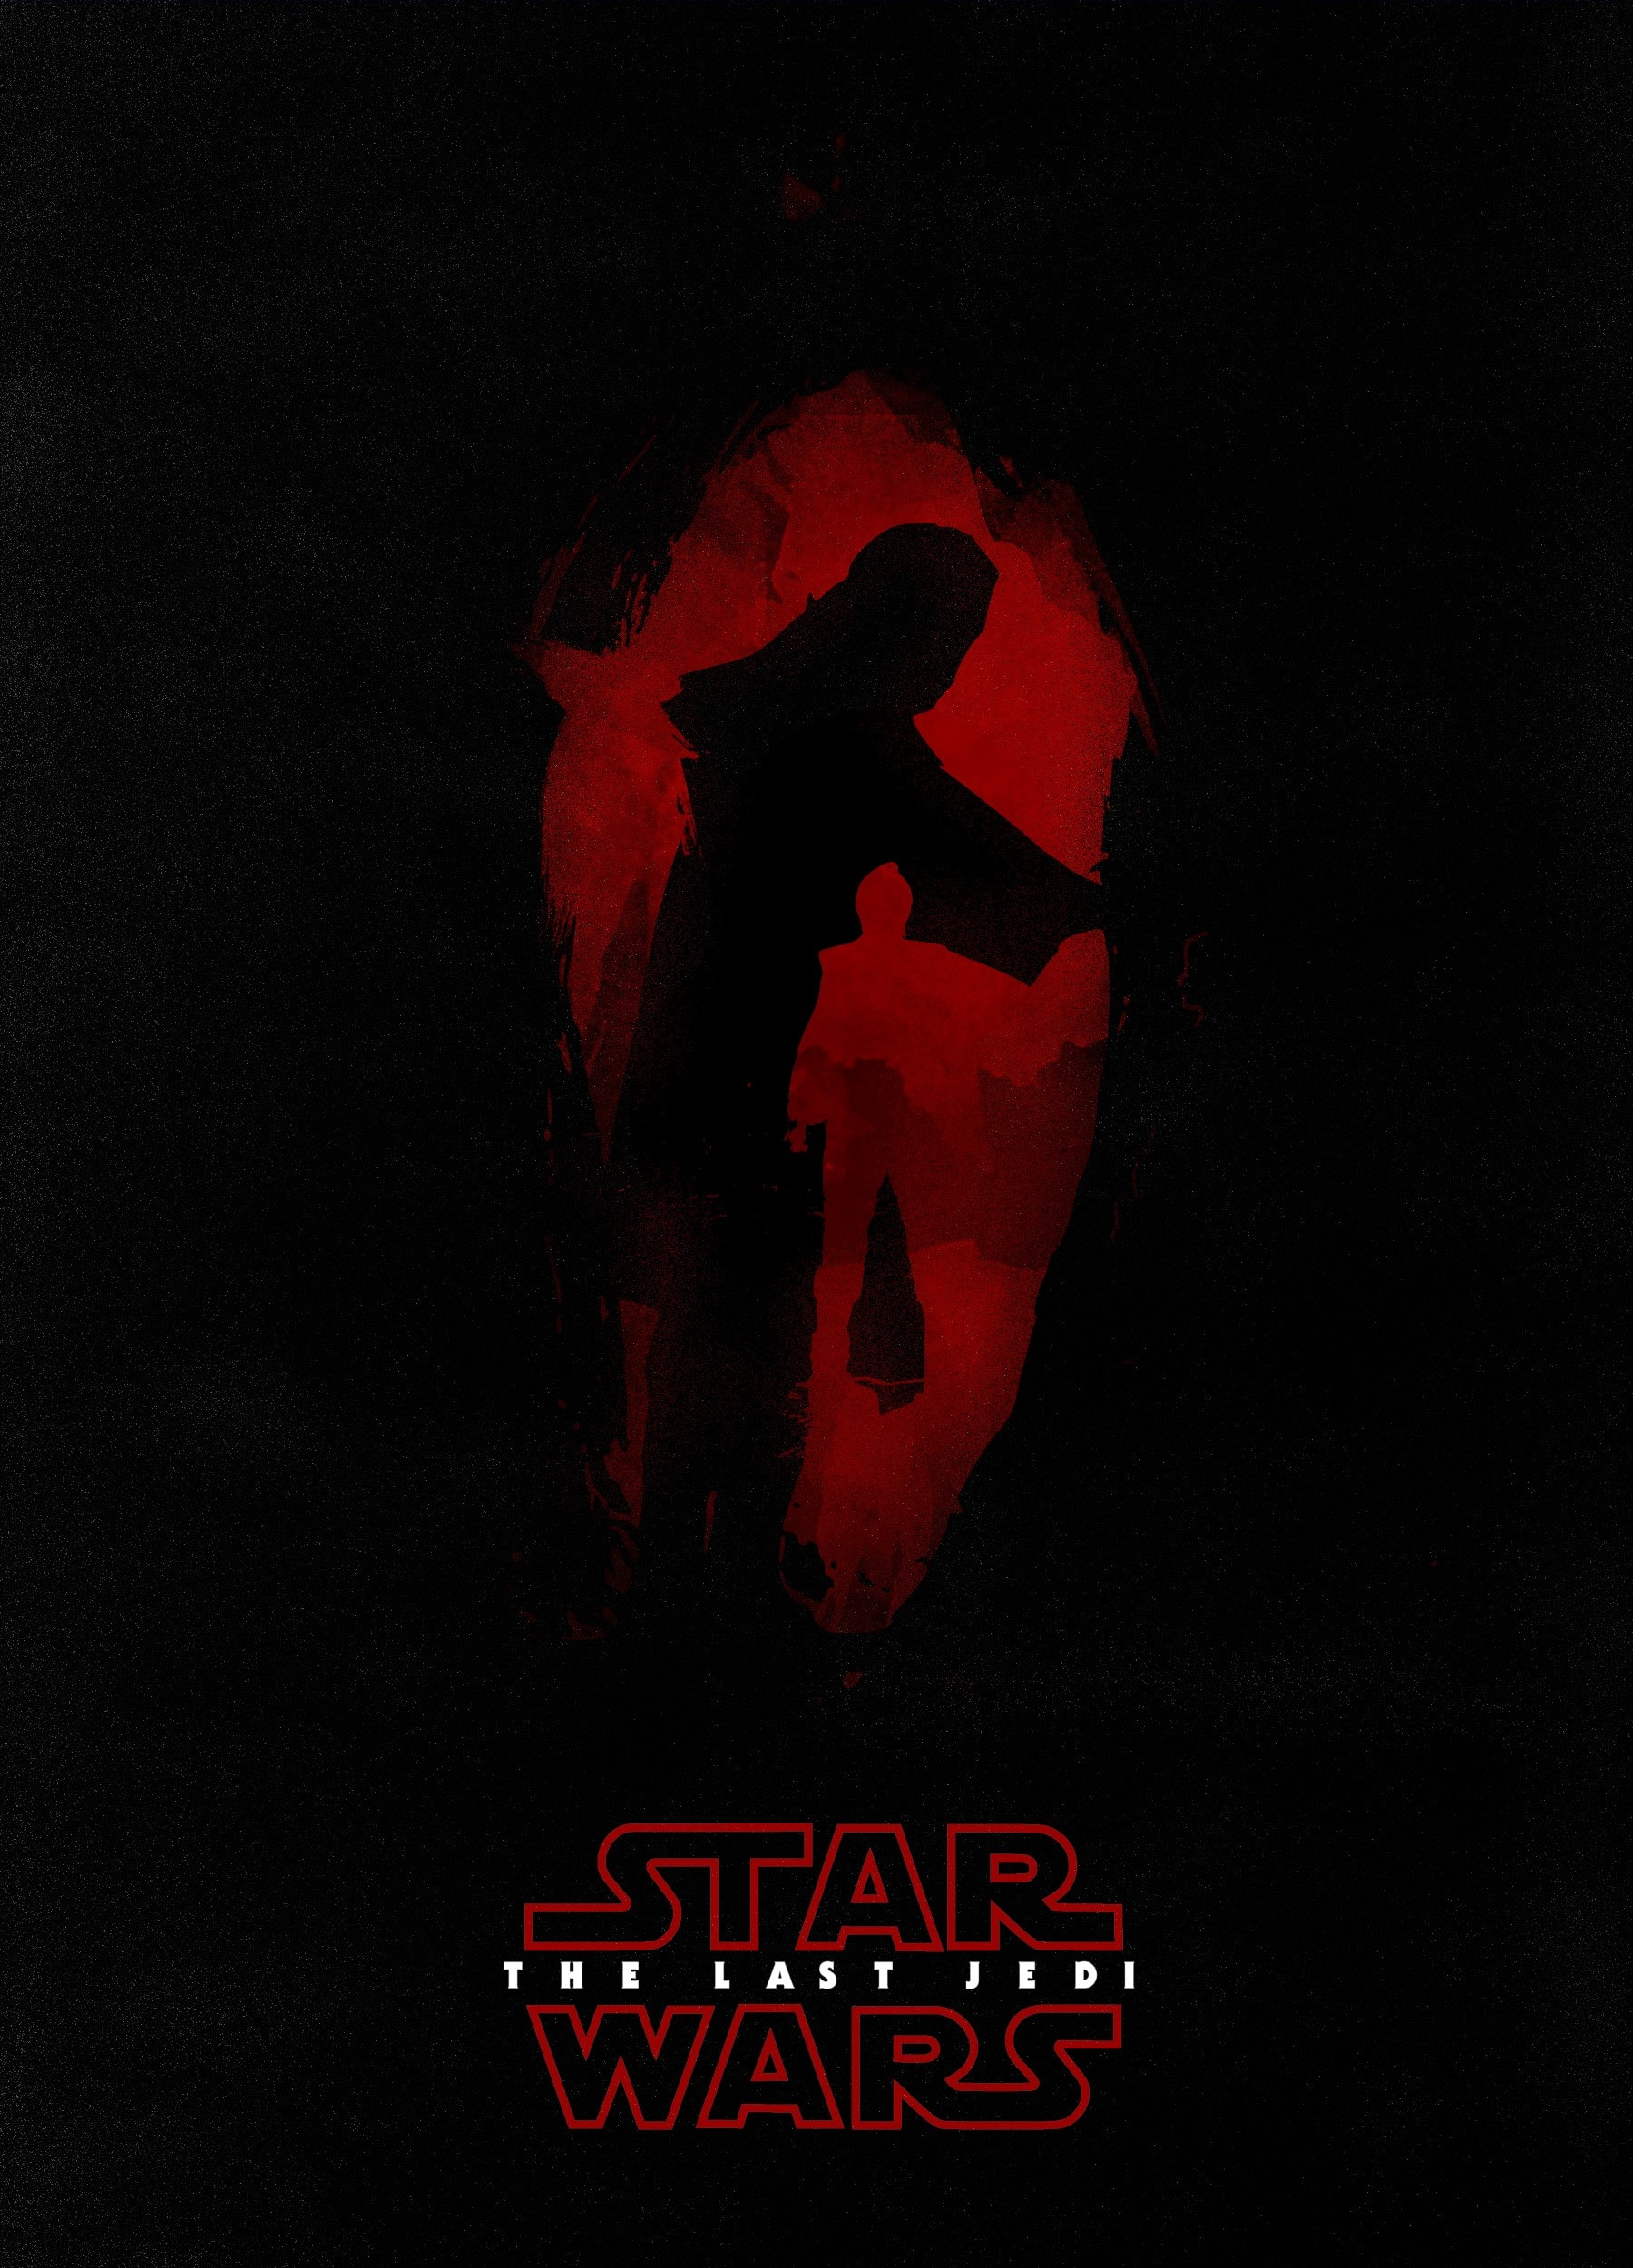 Last Jedi Phone Wallpaper Kolpaper Awesome Free Hd Wallpapers